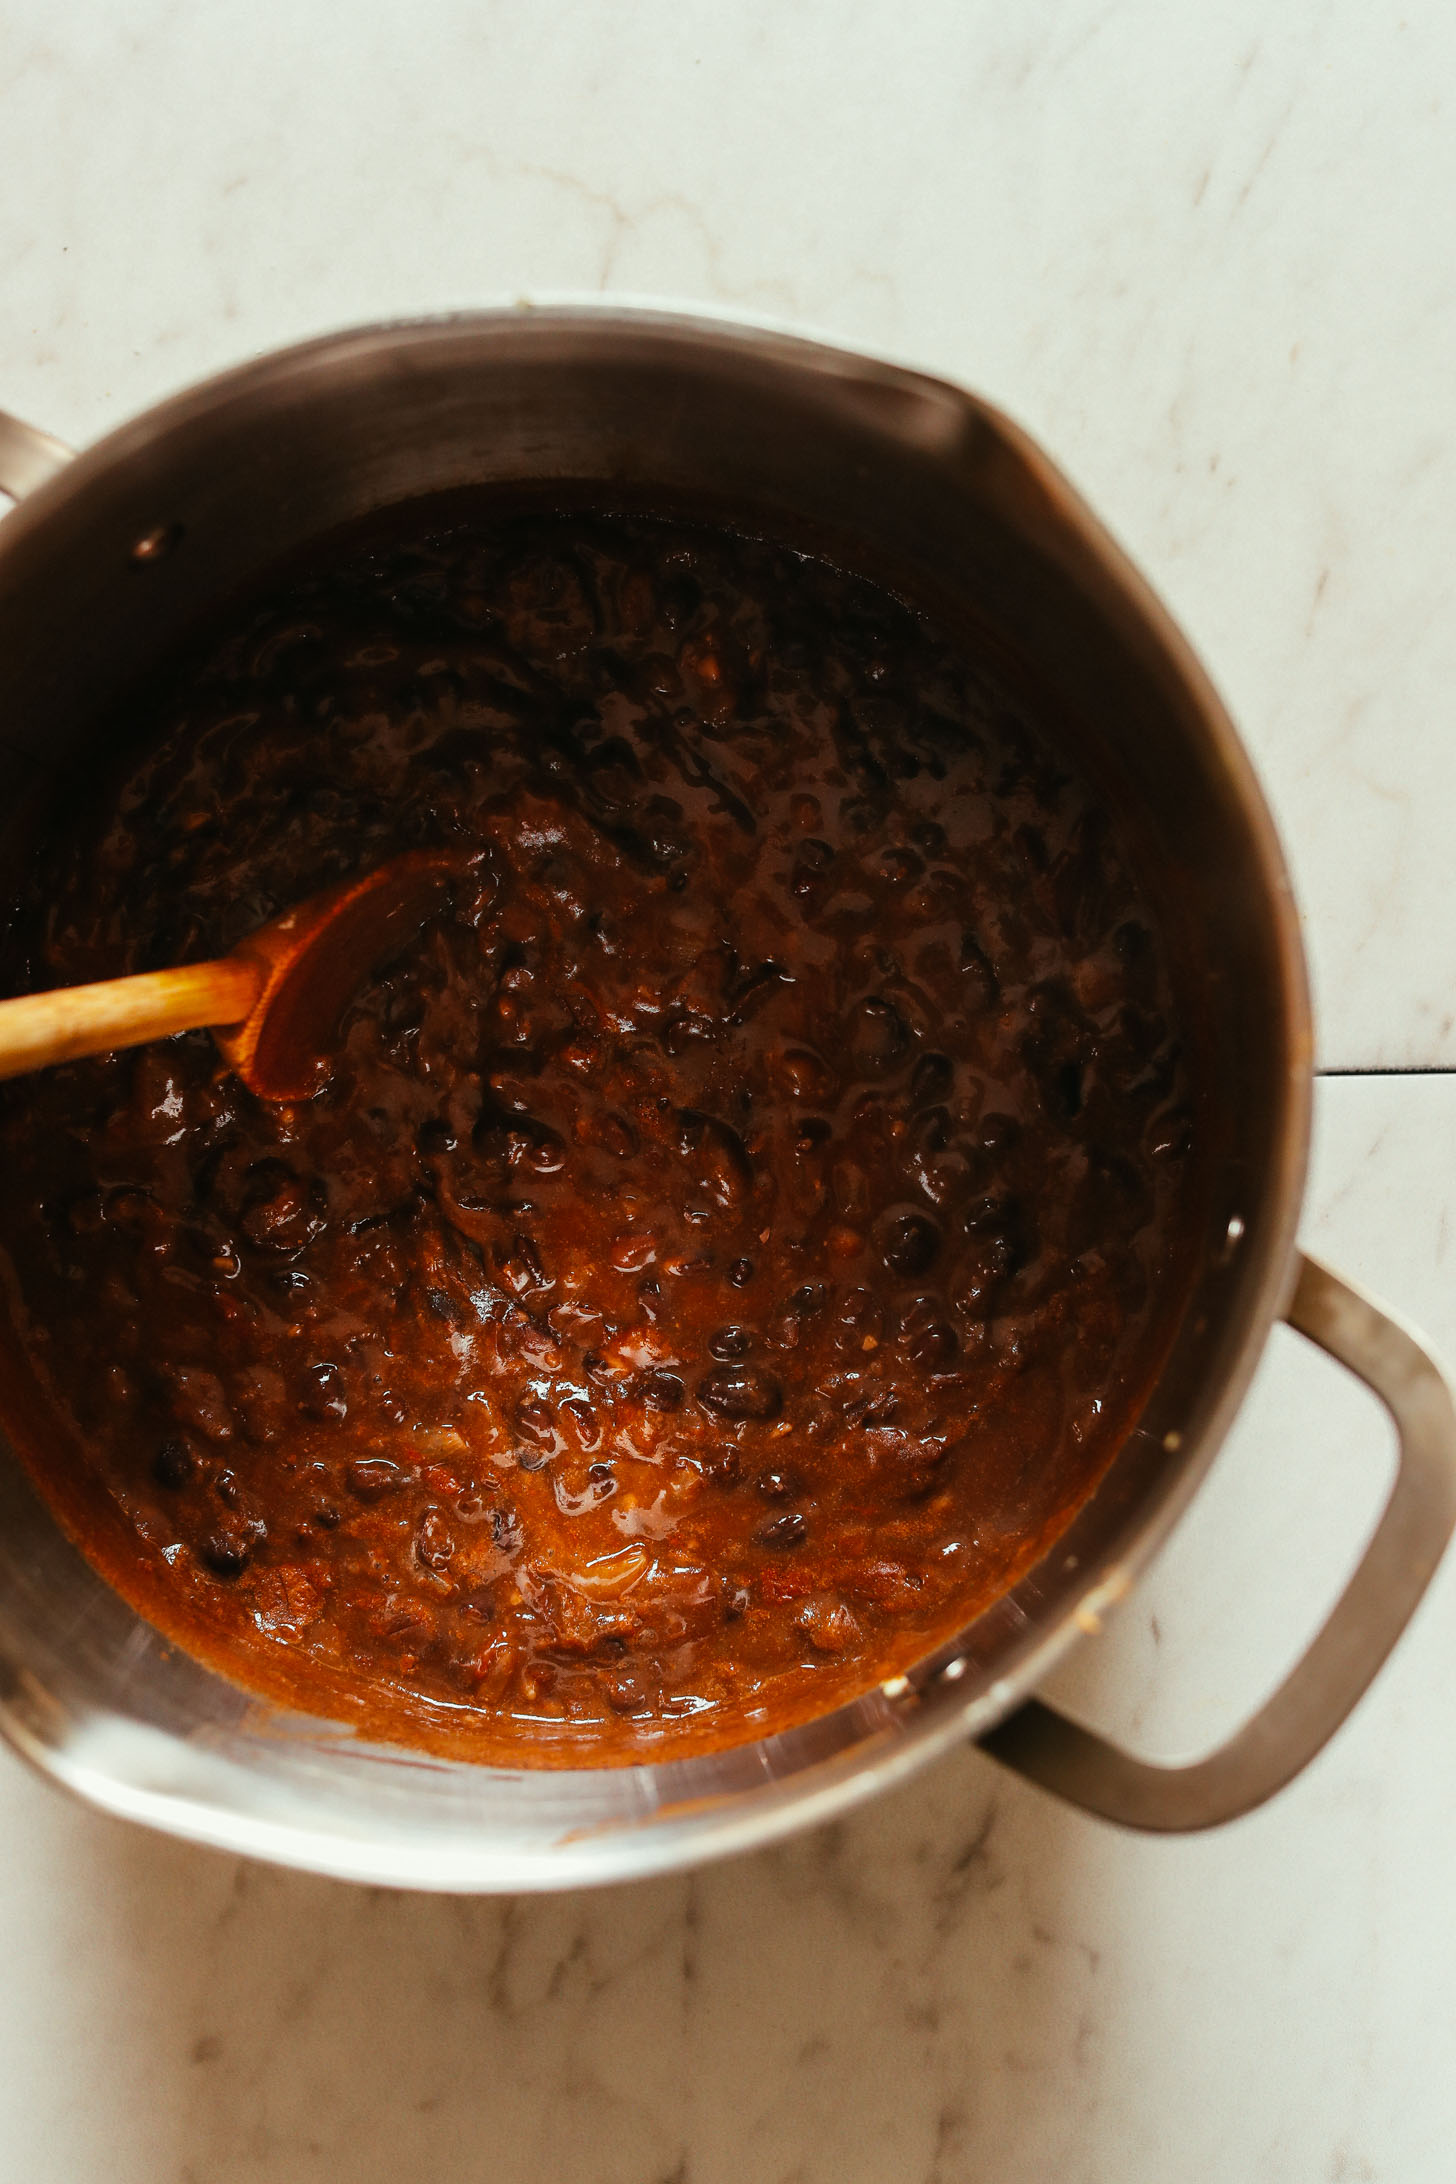 Overhead image of pot with black bean soup and a wooden spoon stirring the ingredients